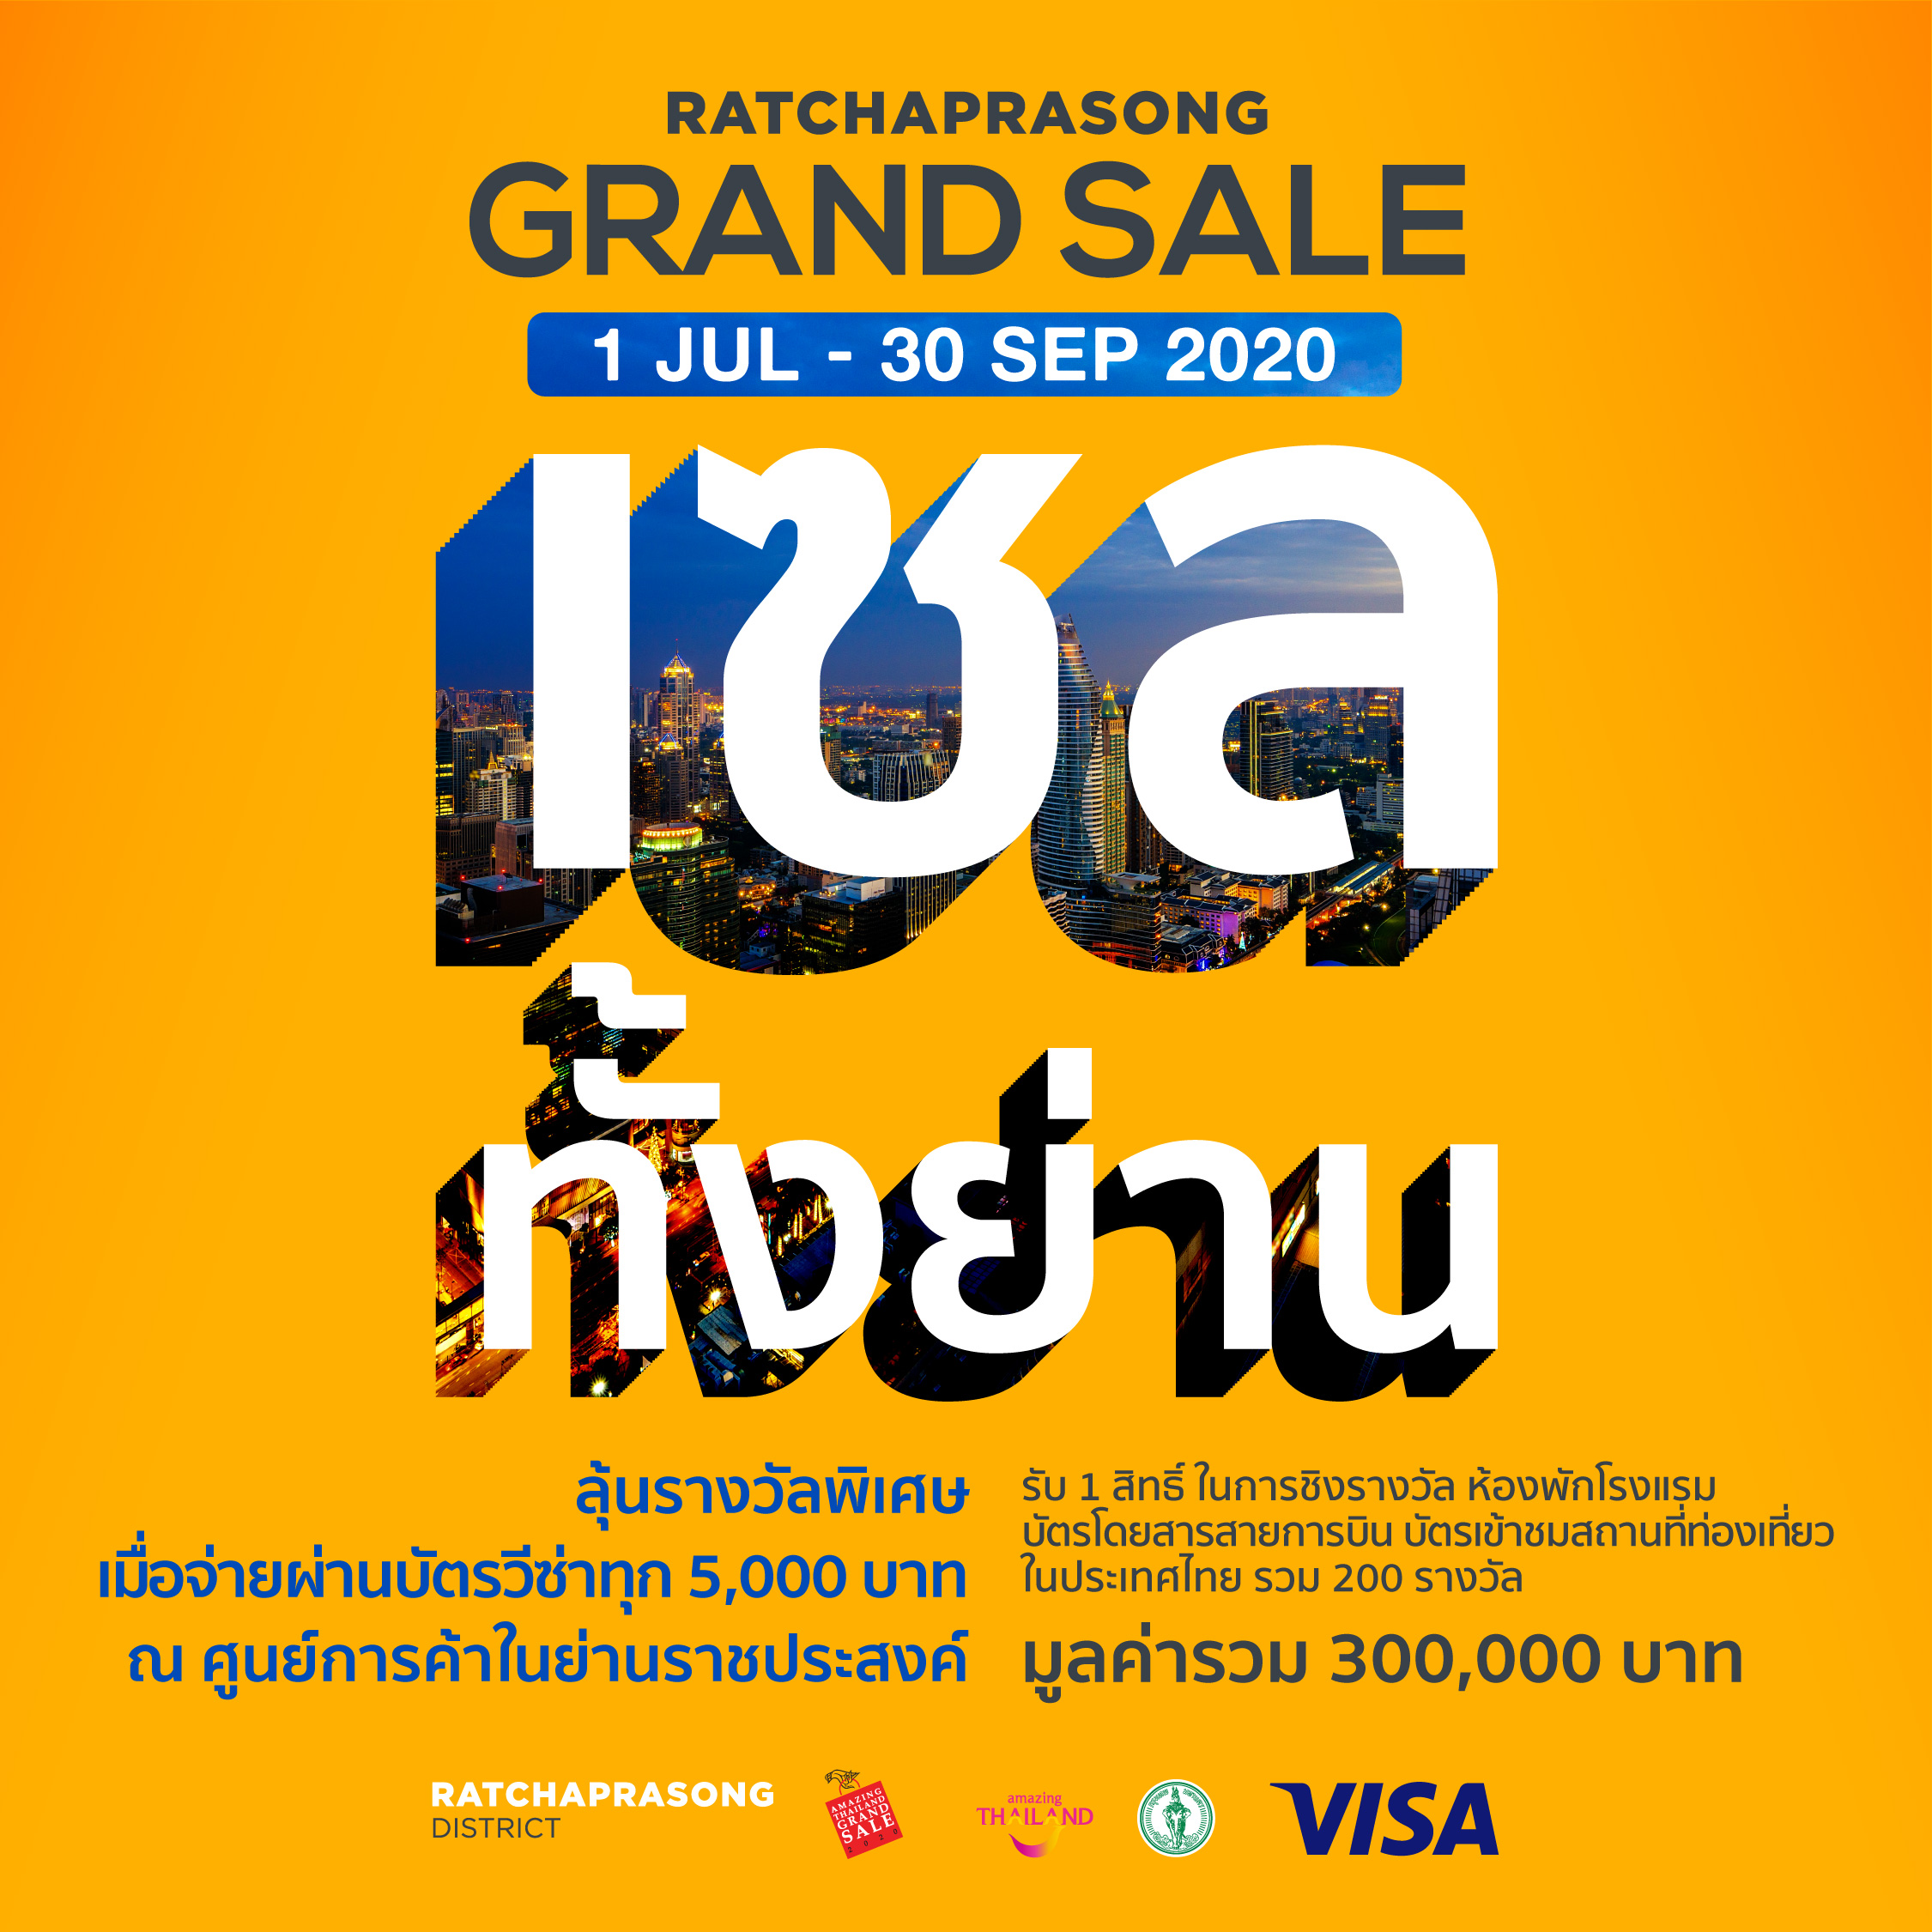 Ratchaprasong Grand Sale 2020